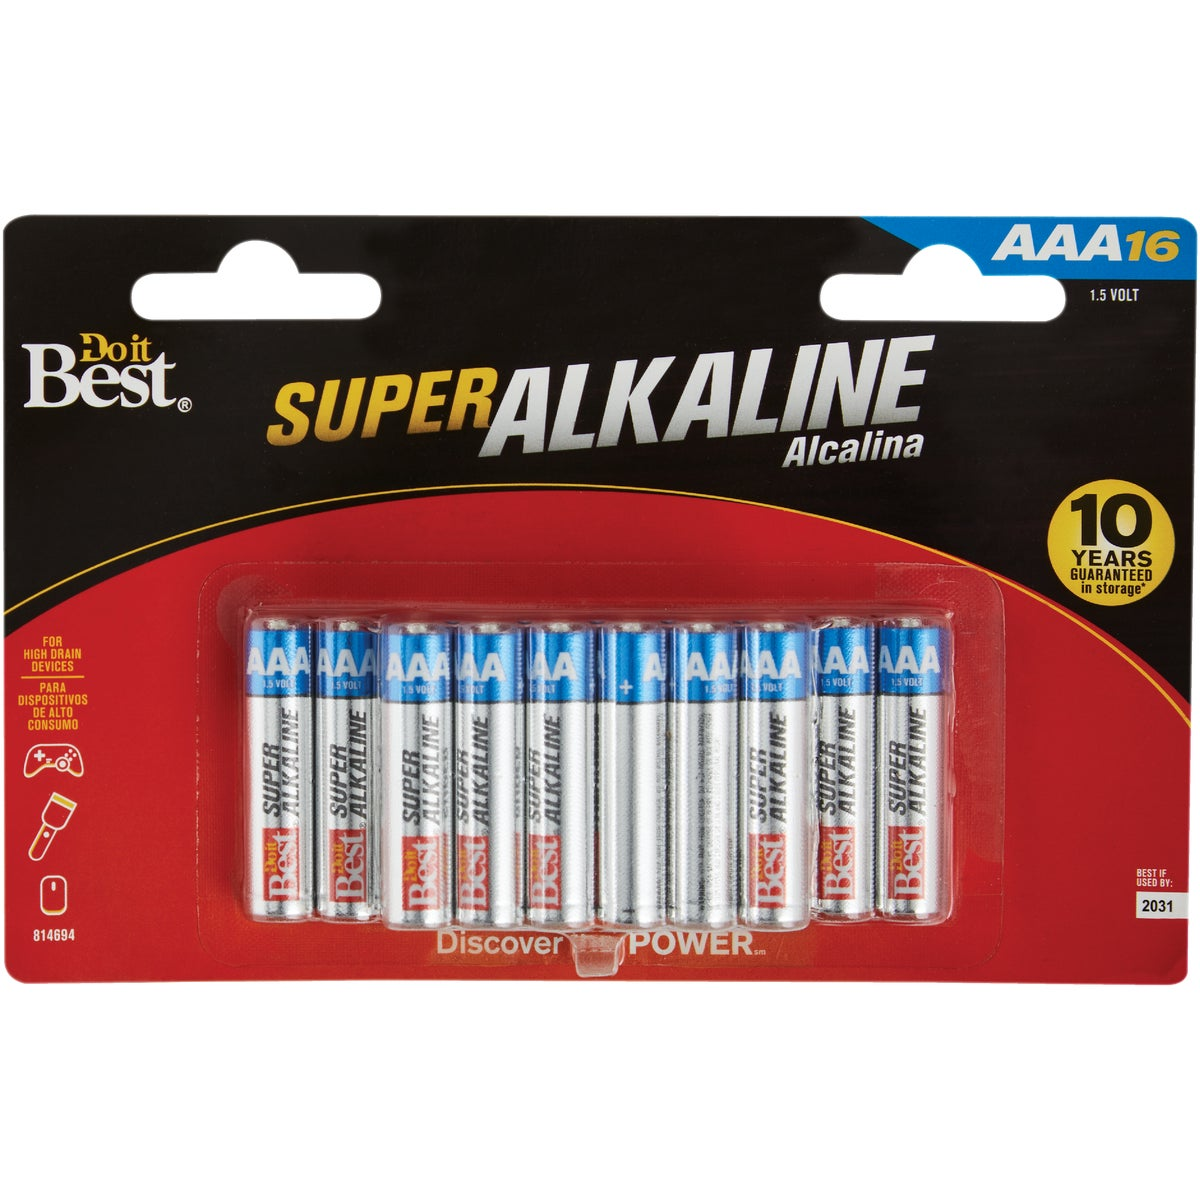 16PK DIB AAA ALK BATTERY - DIB824-16 by Ray O Vac